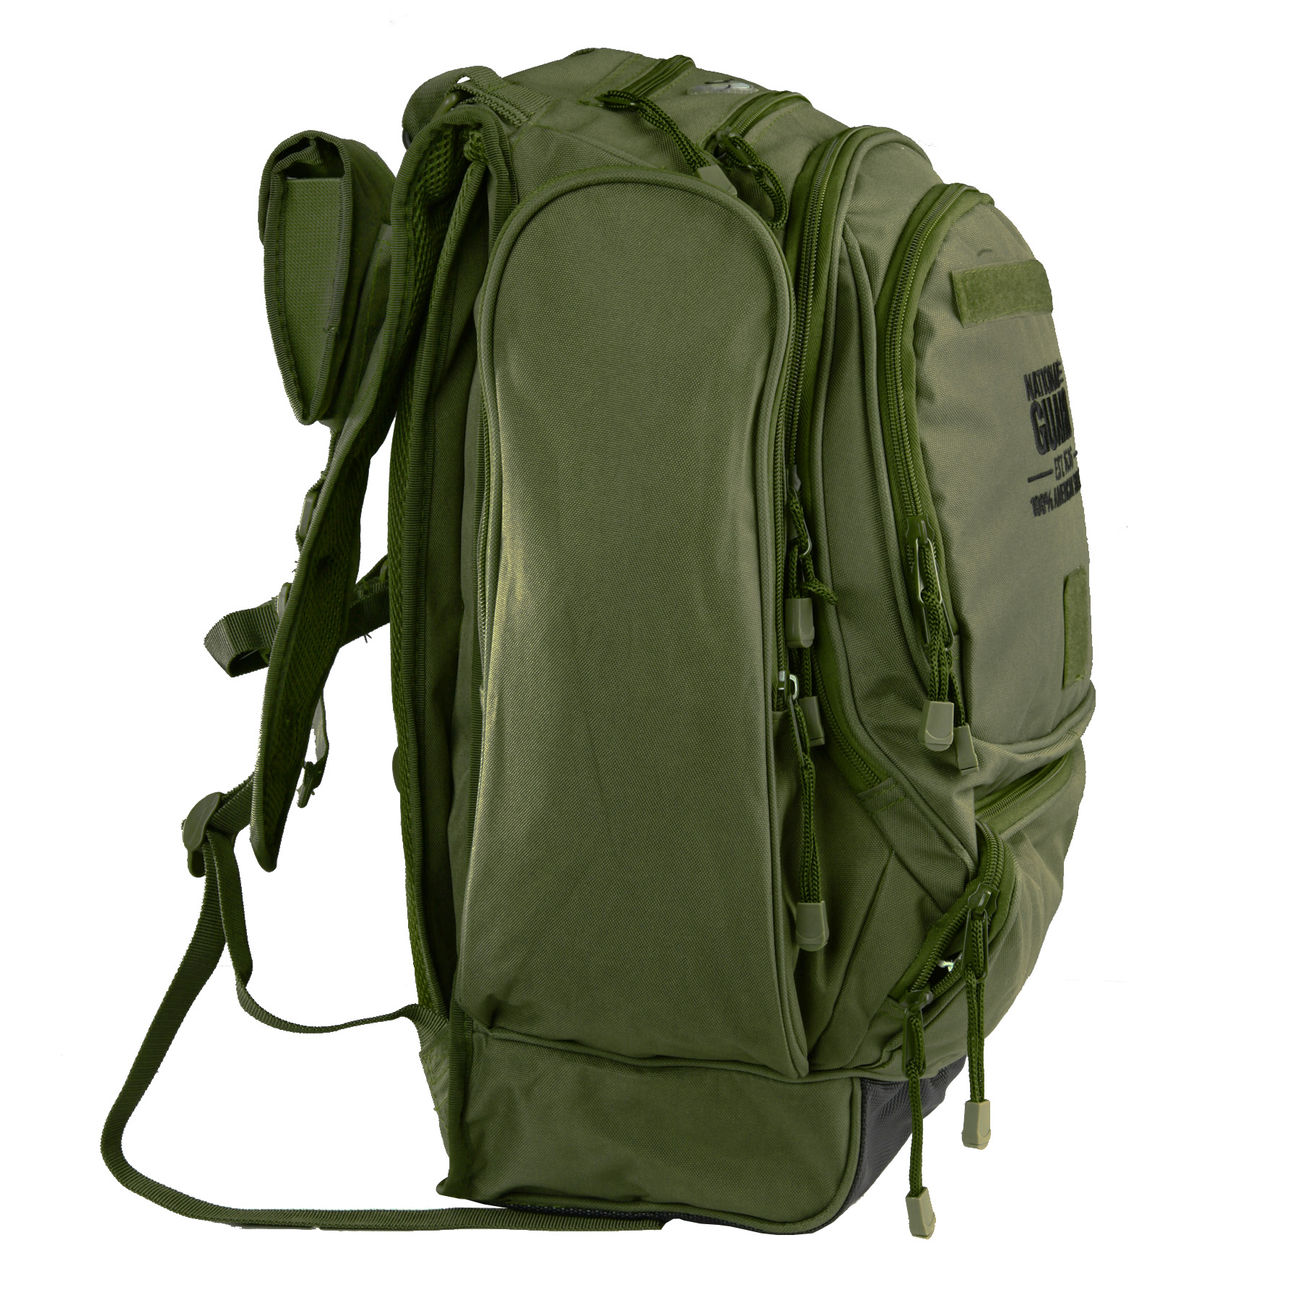 US Rucksack National Guard oliv 2